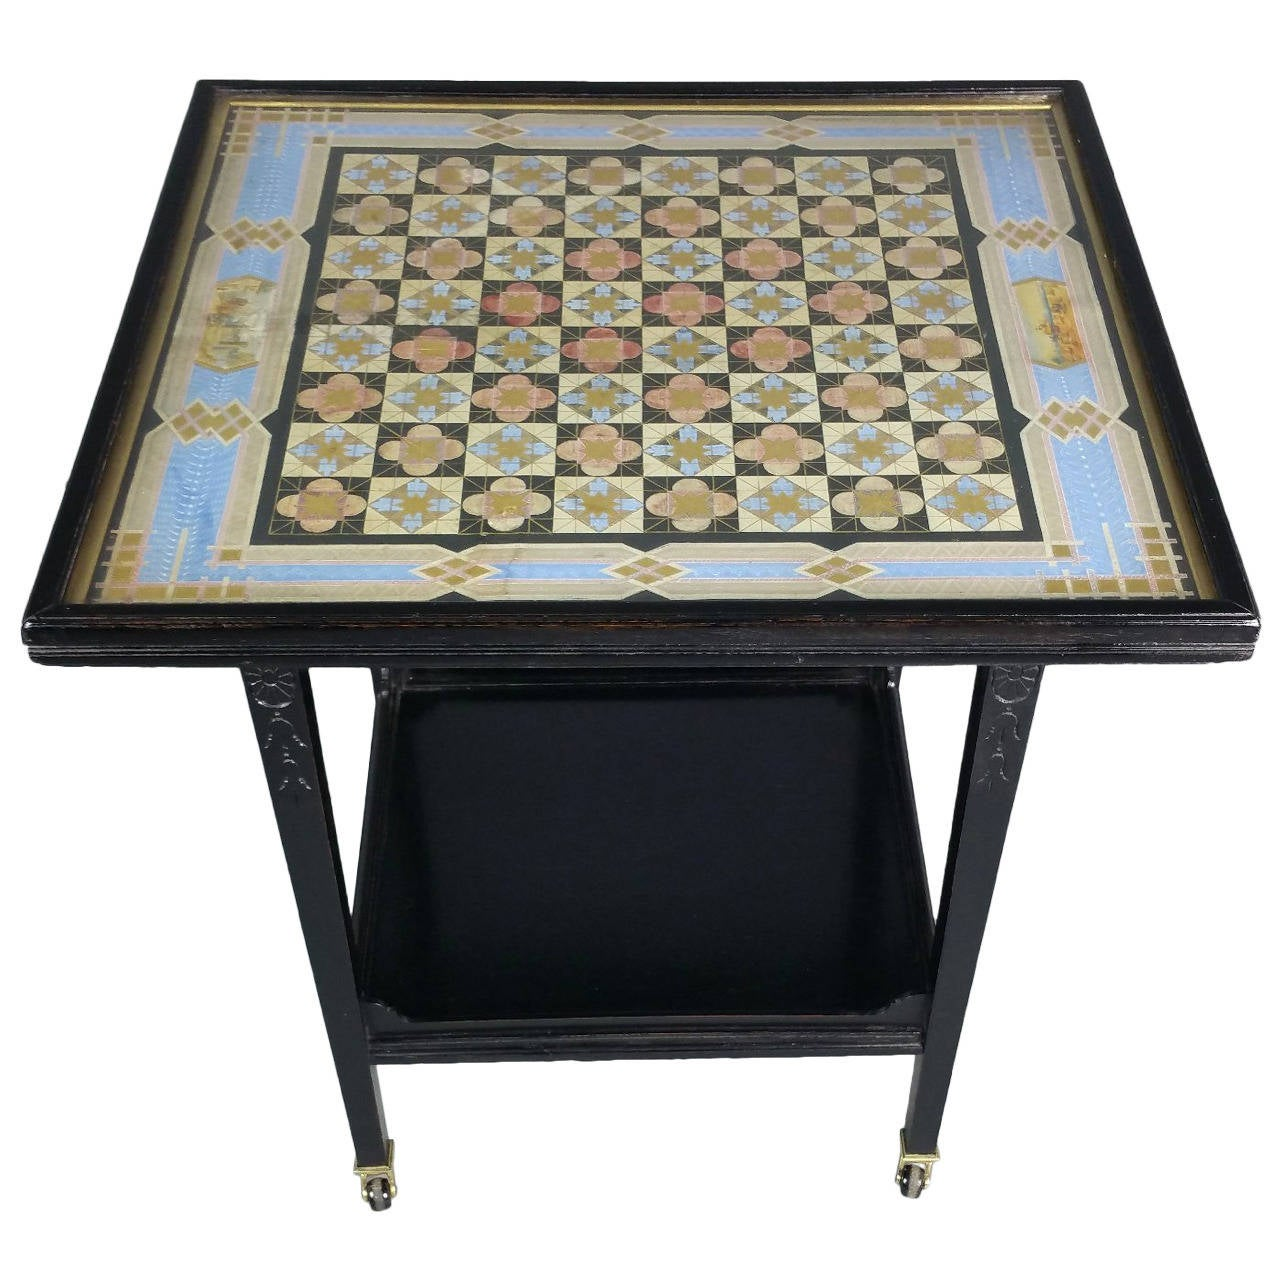 Victorian ebonized aesthetic movement two tier chess table at 1stdibs victorian ebonized aesthetic movement two tier chess table 1 geotapseo Image collections